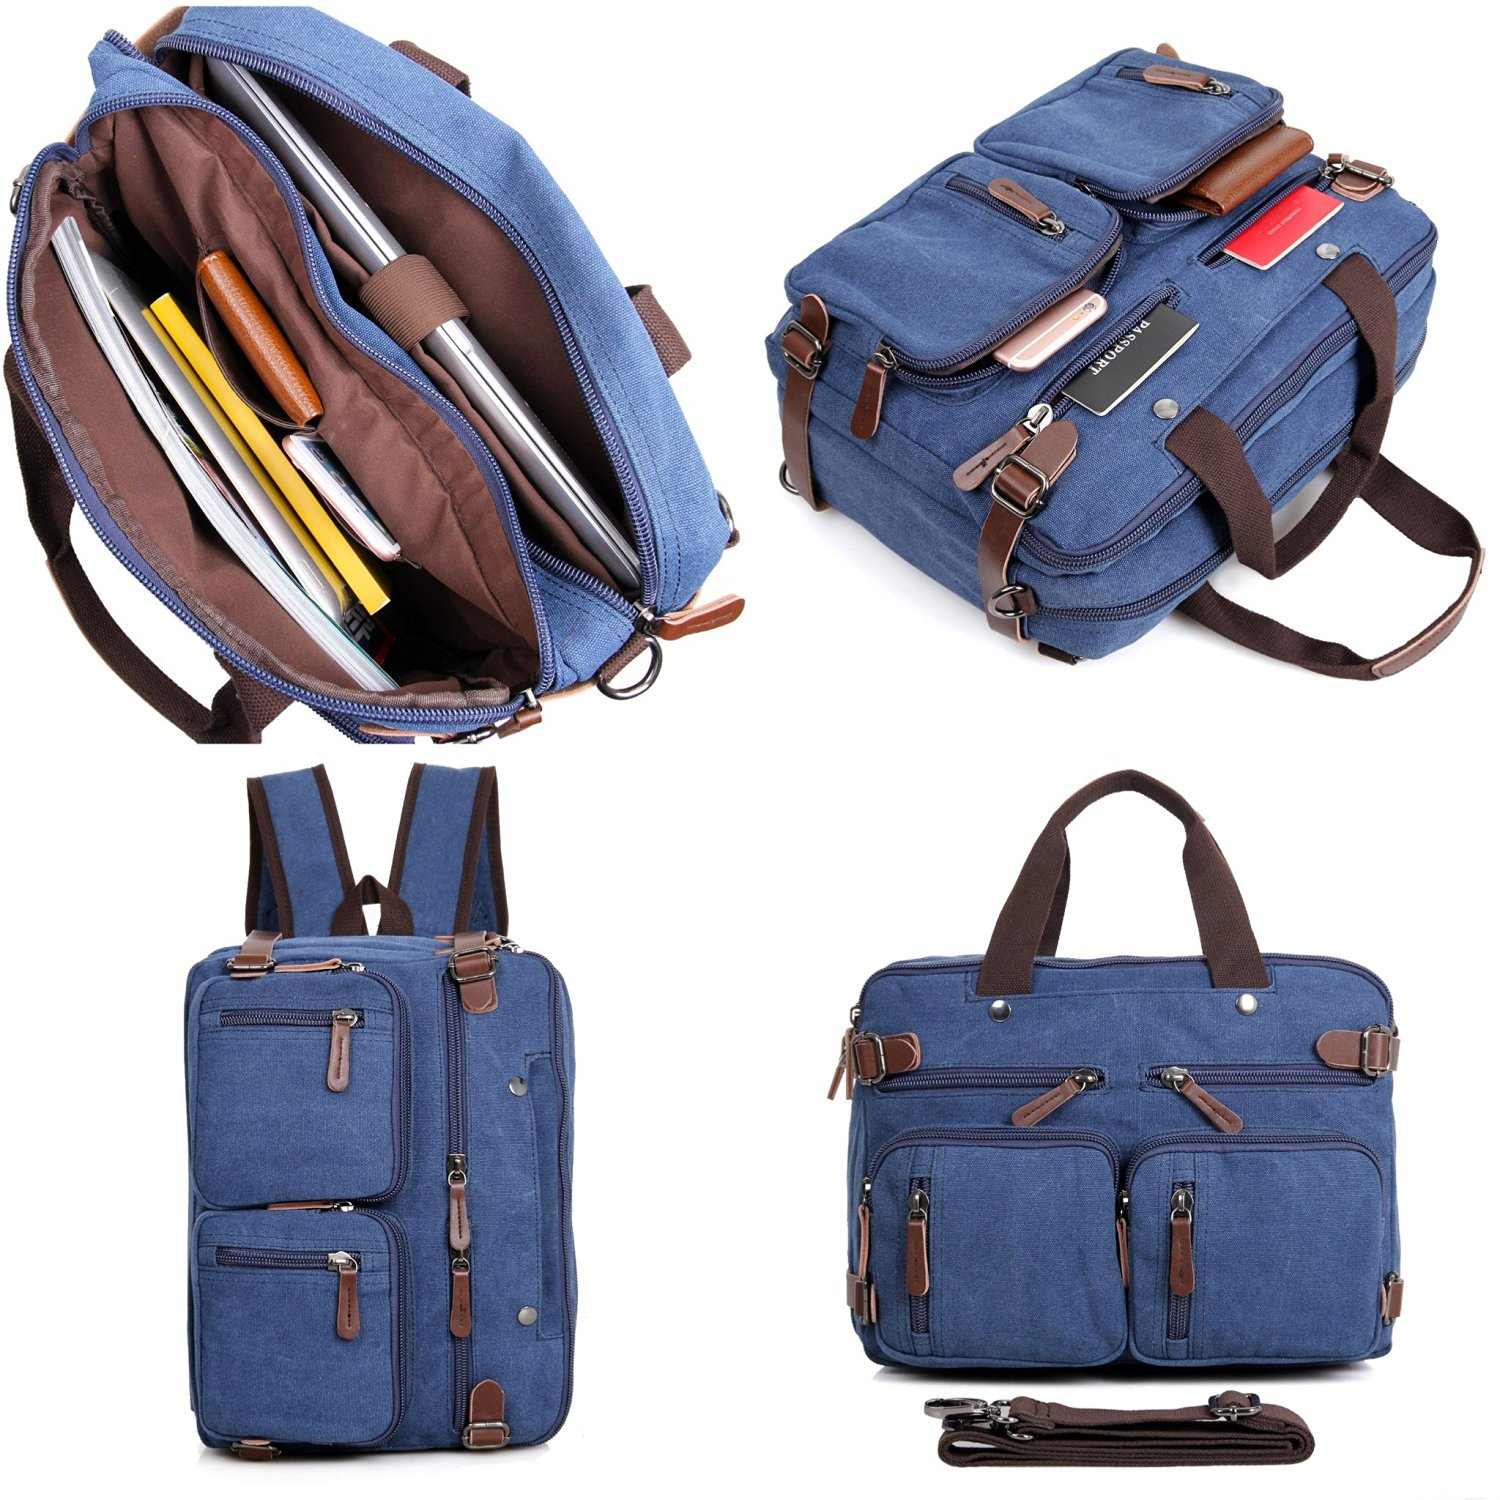 5c3bf9b4ee1 Clean Vintage Hybrid Laptop Backpack Messenger Bag   Convertible Briefcase  Backpack BookBag Rucksack Satchel Waxed Canvas